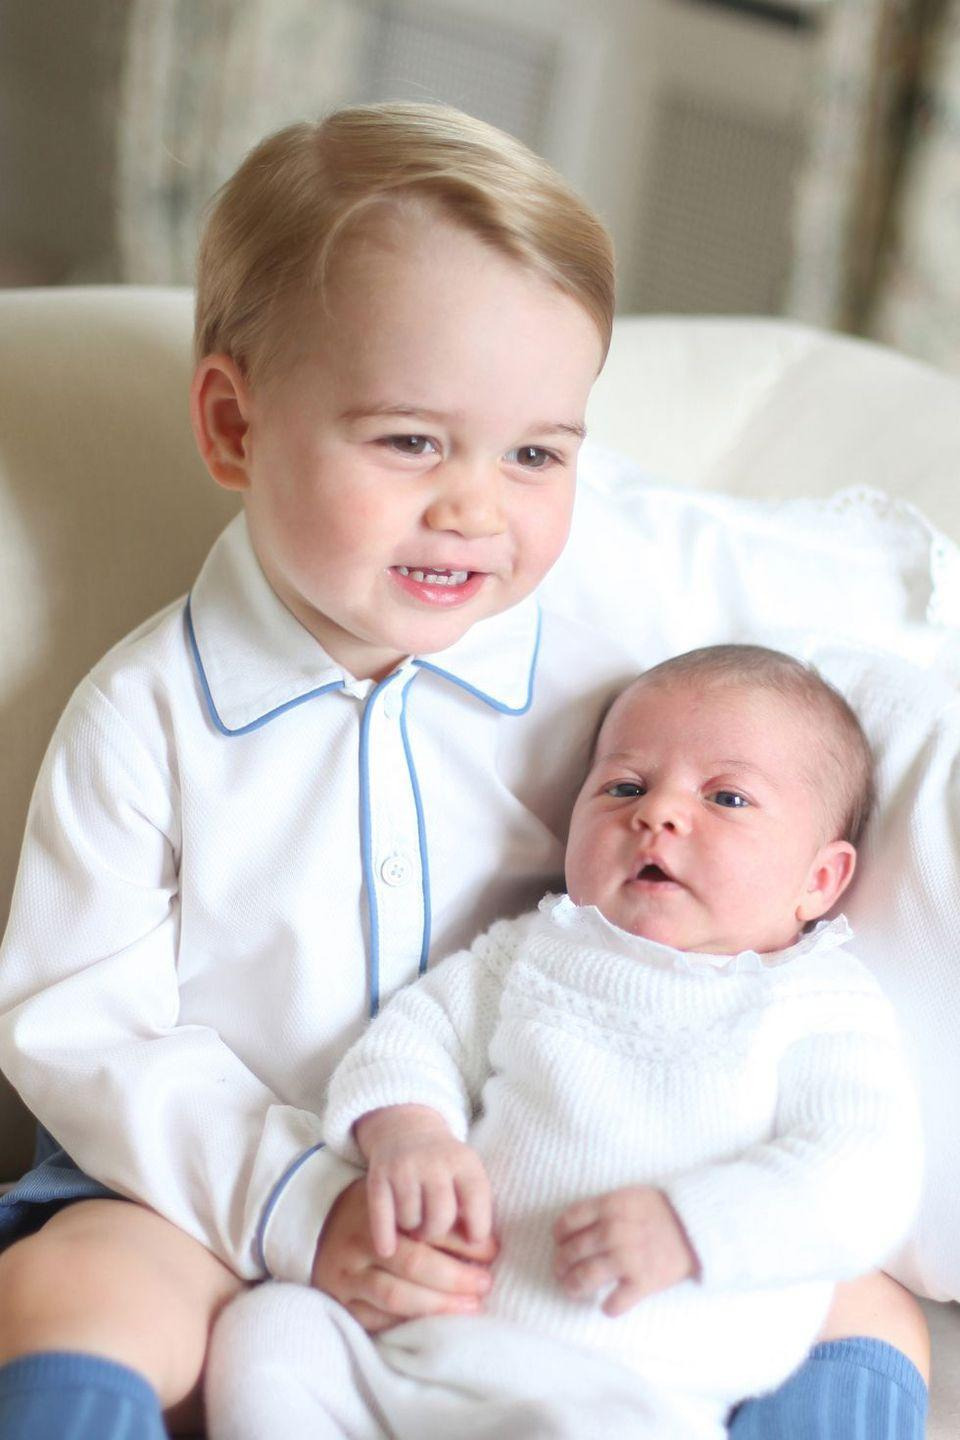 <p>Prince George smiles while holding his newborn sister, Princess Charlotte, who was born on May 2, 2015. Kate Middleton captured the photo when her daughter was less than a month old, at the Duke and Duchess' country home, Anmer Hall, in Norfolk, England. </p>